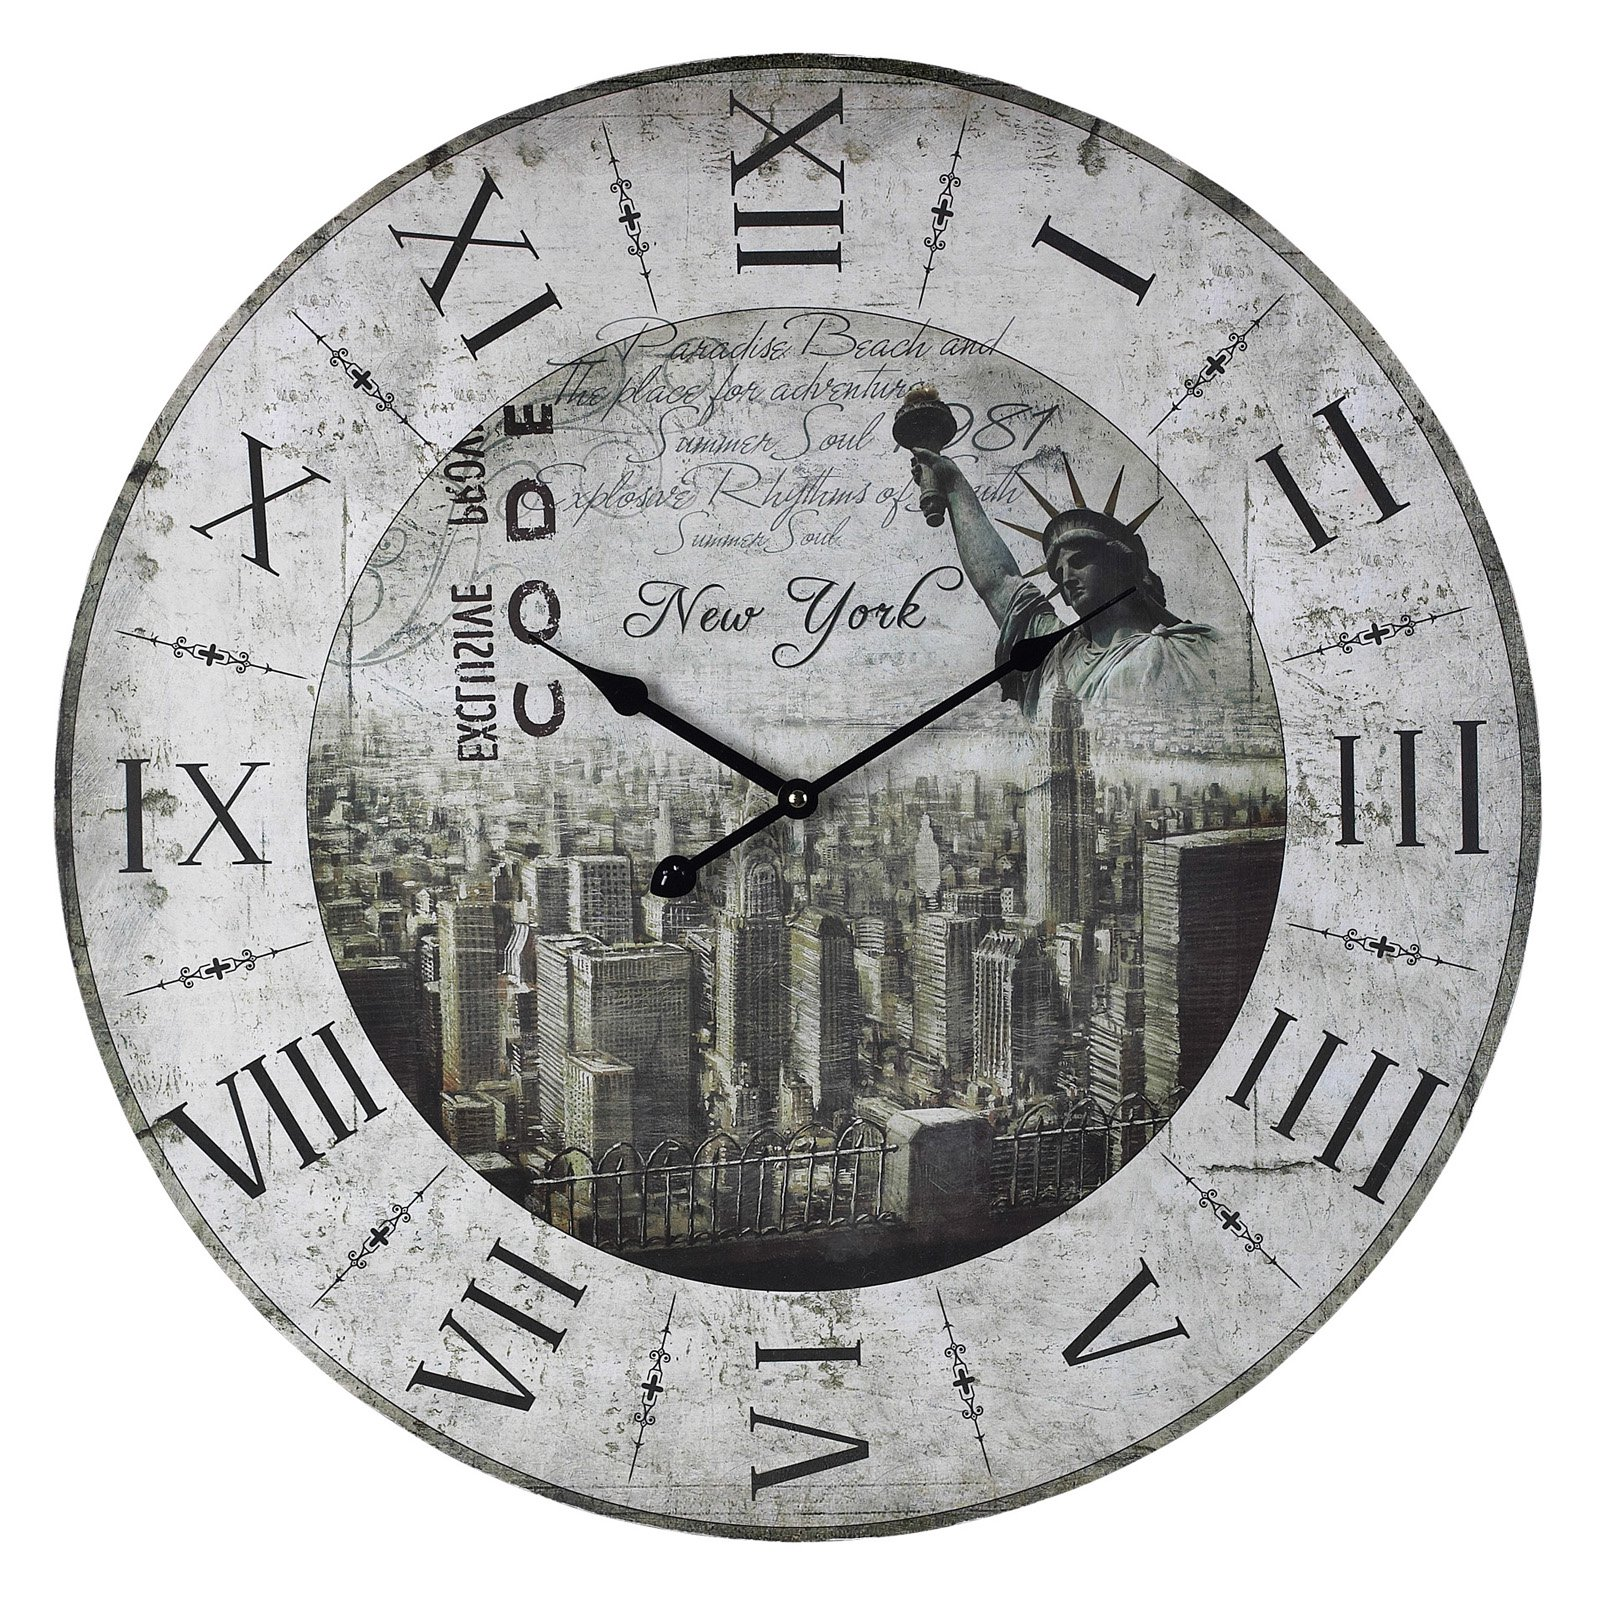 Elk Lighting New York, New York Oversized 24 in. Wall Clock